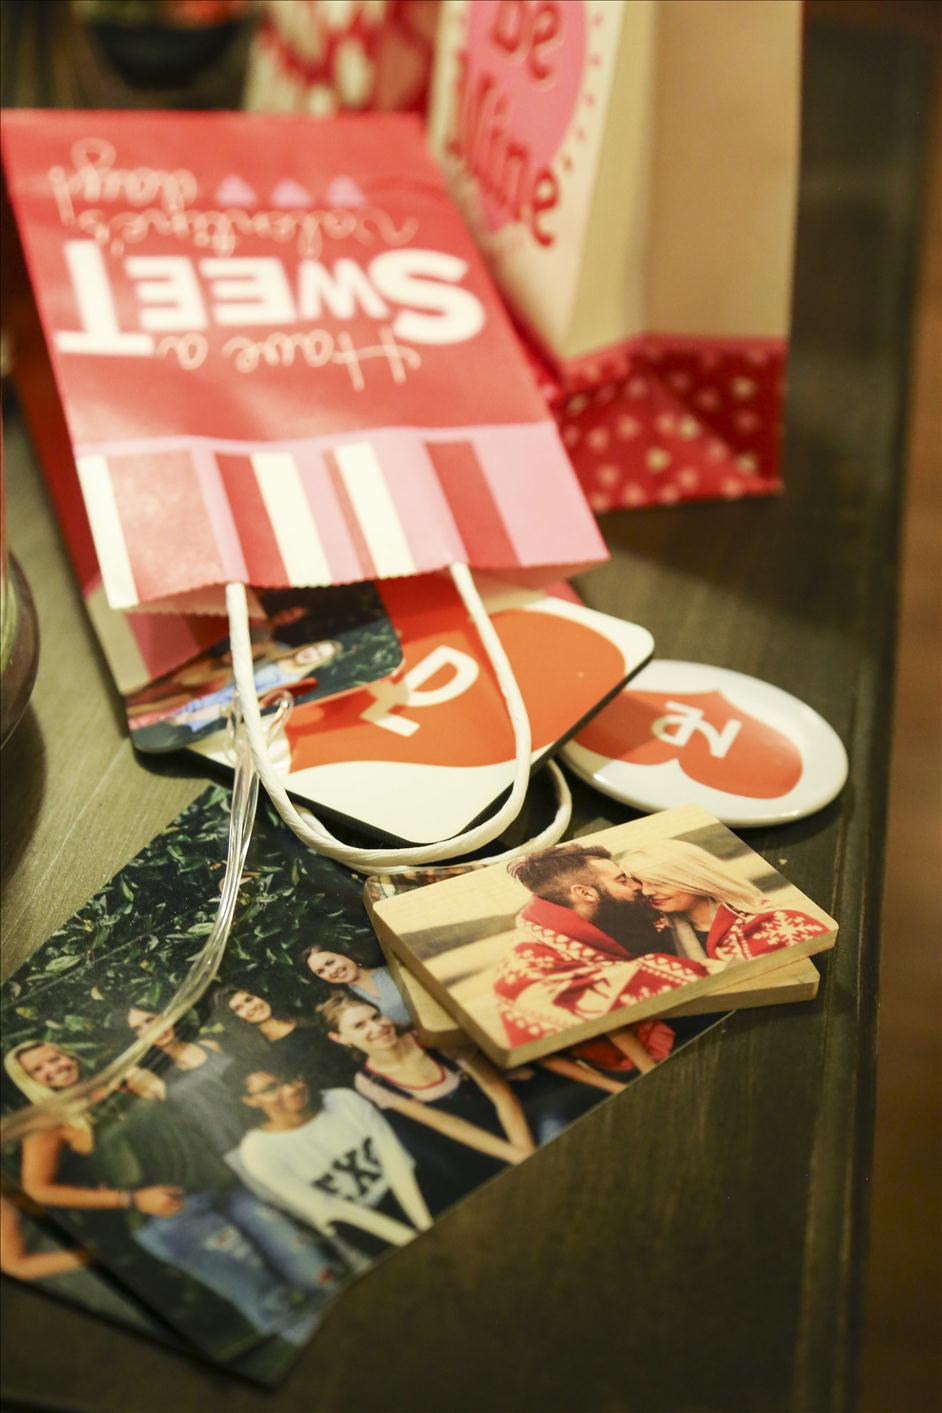 Galentine's Day party gifts // Nations Photo Lab photo prints, photo coasters, custom usb drives, photo buttons